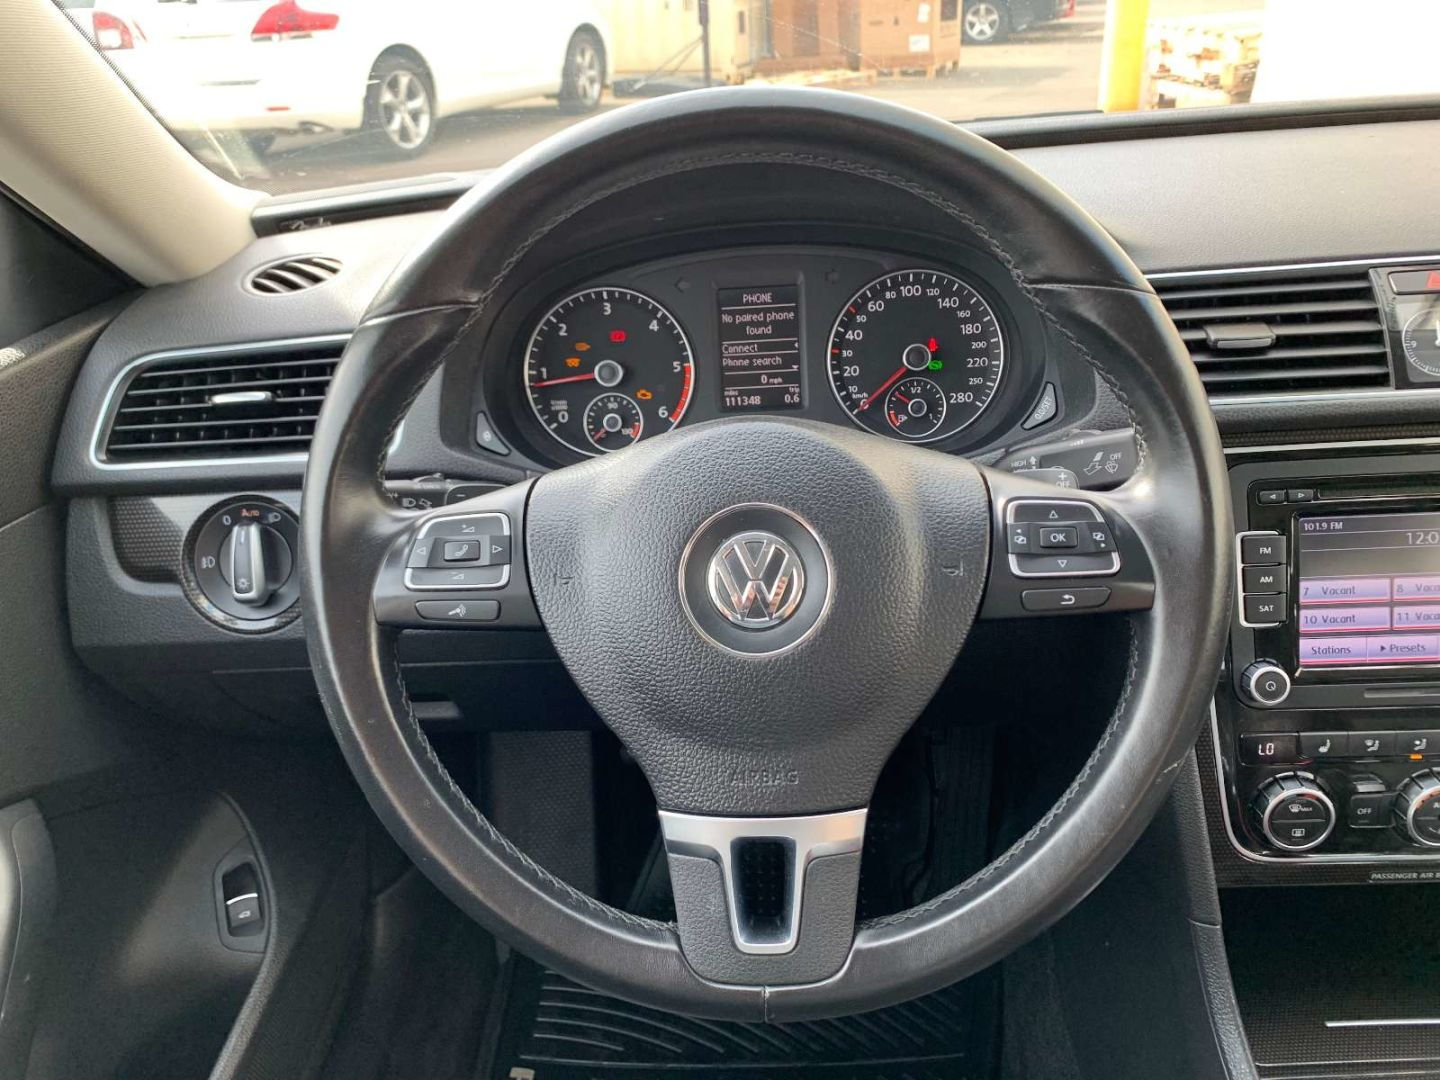 2012 Volkswagen Passat 2.0 TDI DSG Highline for sale in Edmonton, Alberta